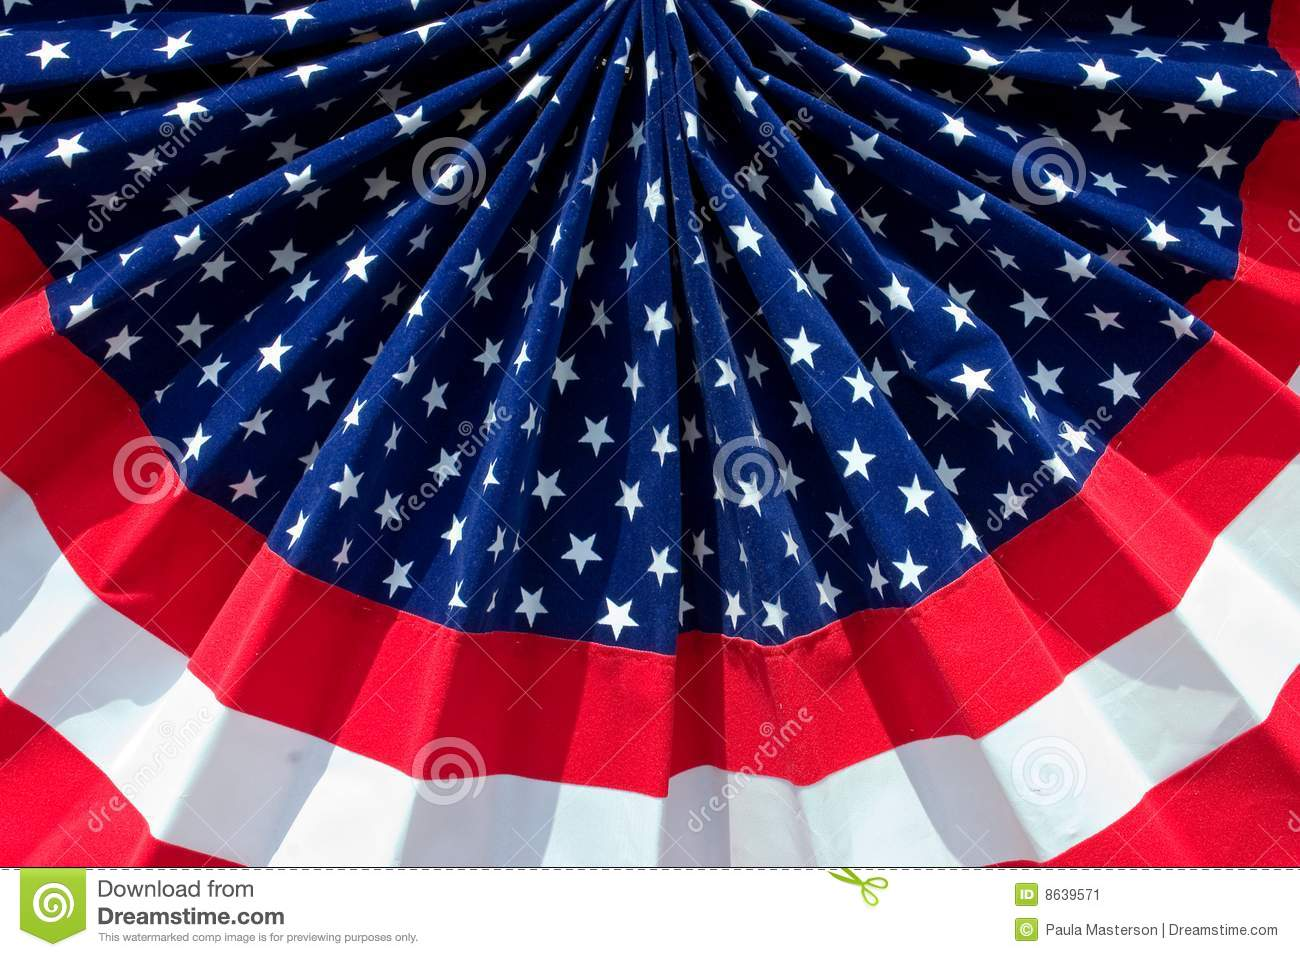 Dreamstime Images American Flag Decoration Stock Image Image Of Decorations